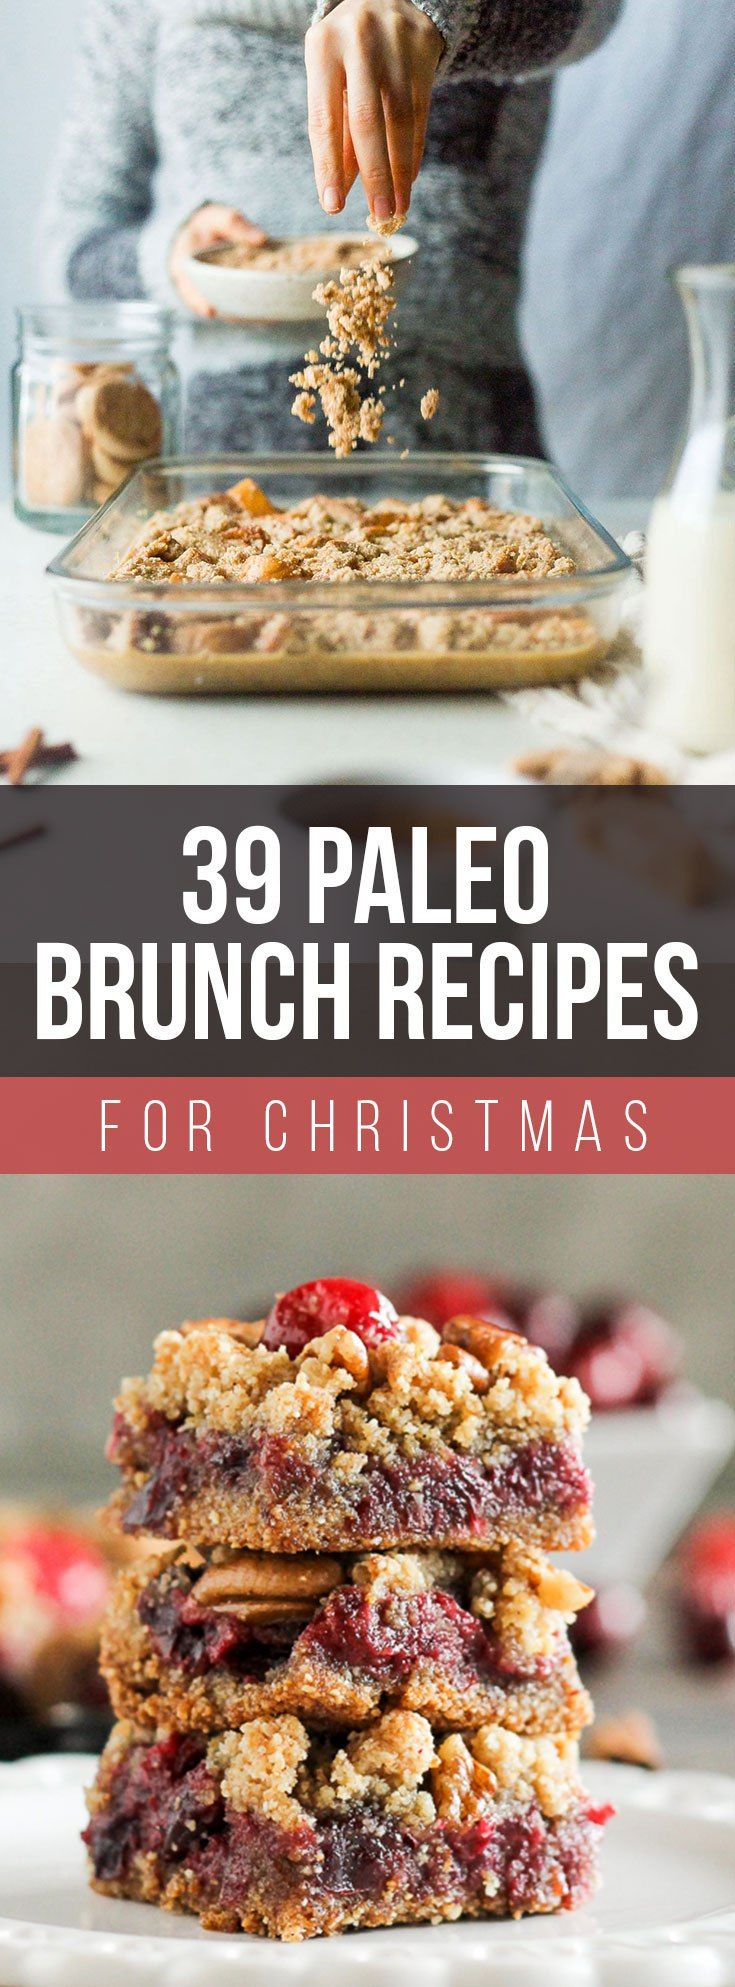 These 39 Paleo Brunch Recipes for Christmas are incredibly good looking and delicious! A perfect way to start Christmas Day!